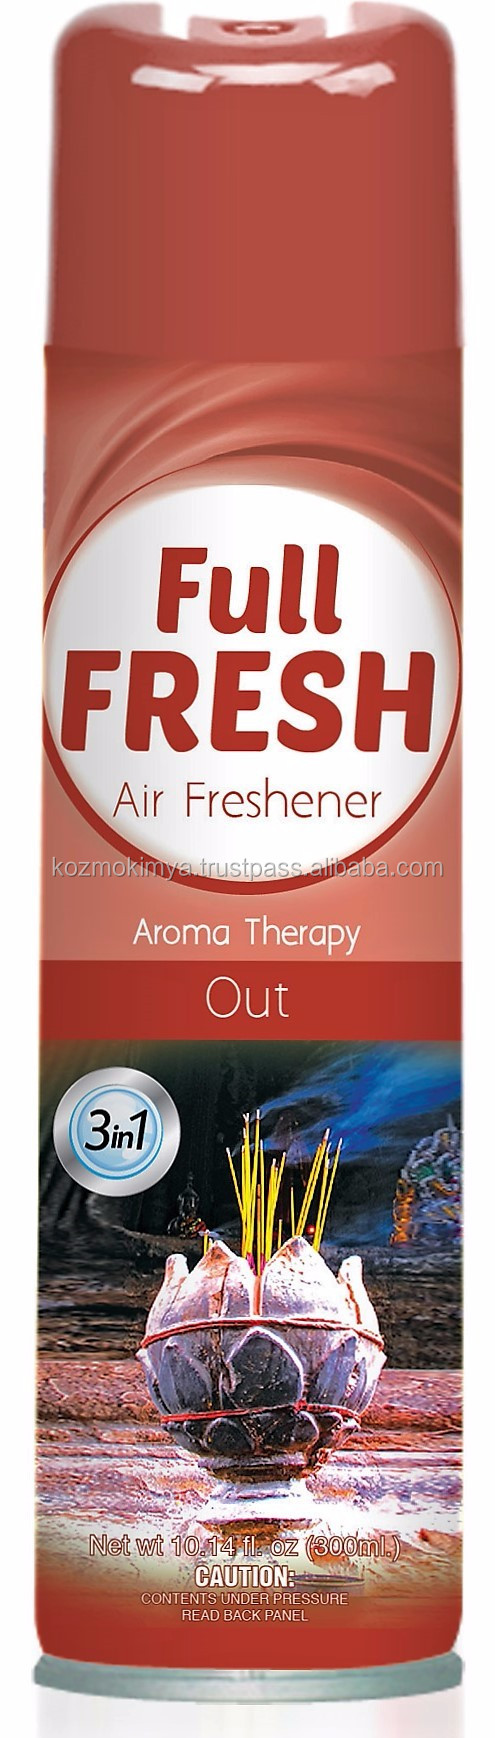 300ml Aroma Therapy Oud Air Freshener